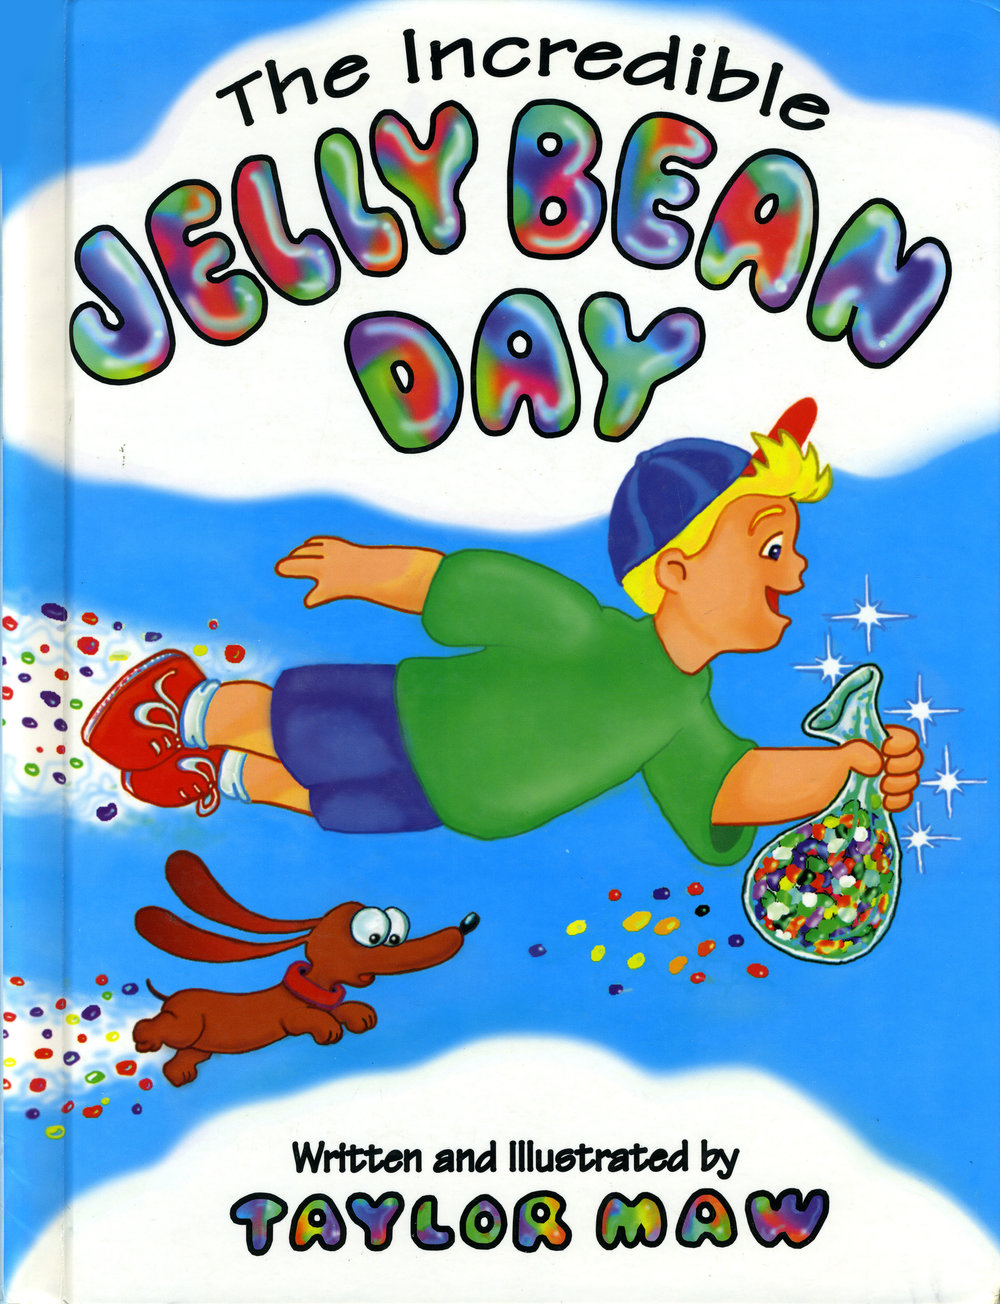 The Incredible Jelly Bean Day 1997_taylormaw.jpg